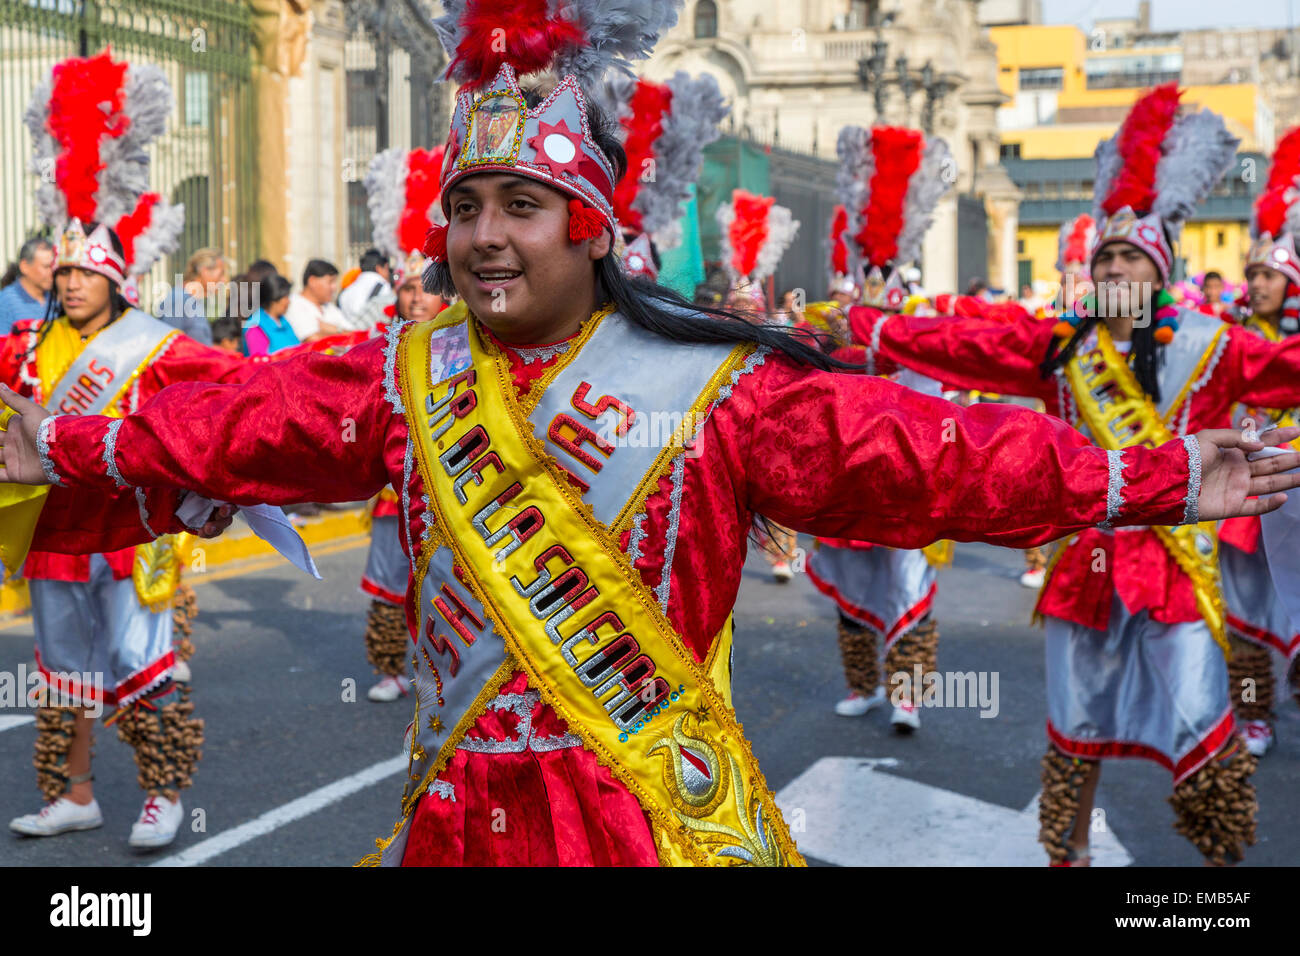 Lima, Peru.  Young Peruvian Men Marching in an Andean Cultural Parade, Plaza de Armas. - Stock Image